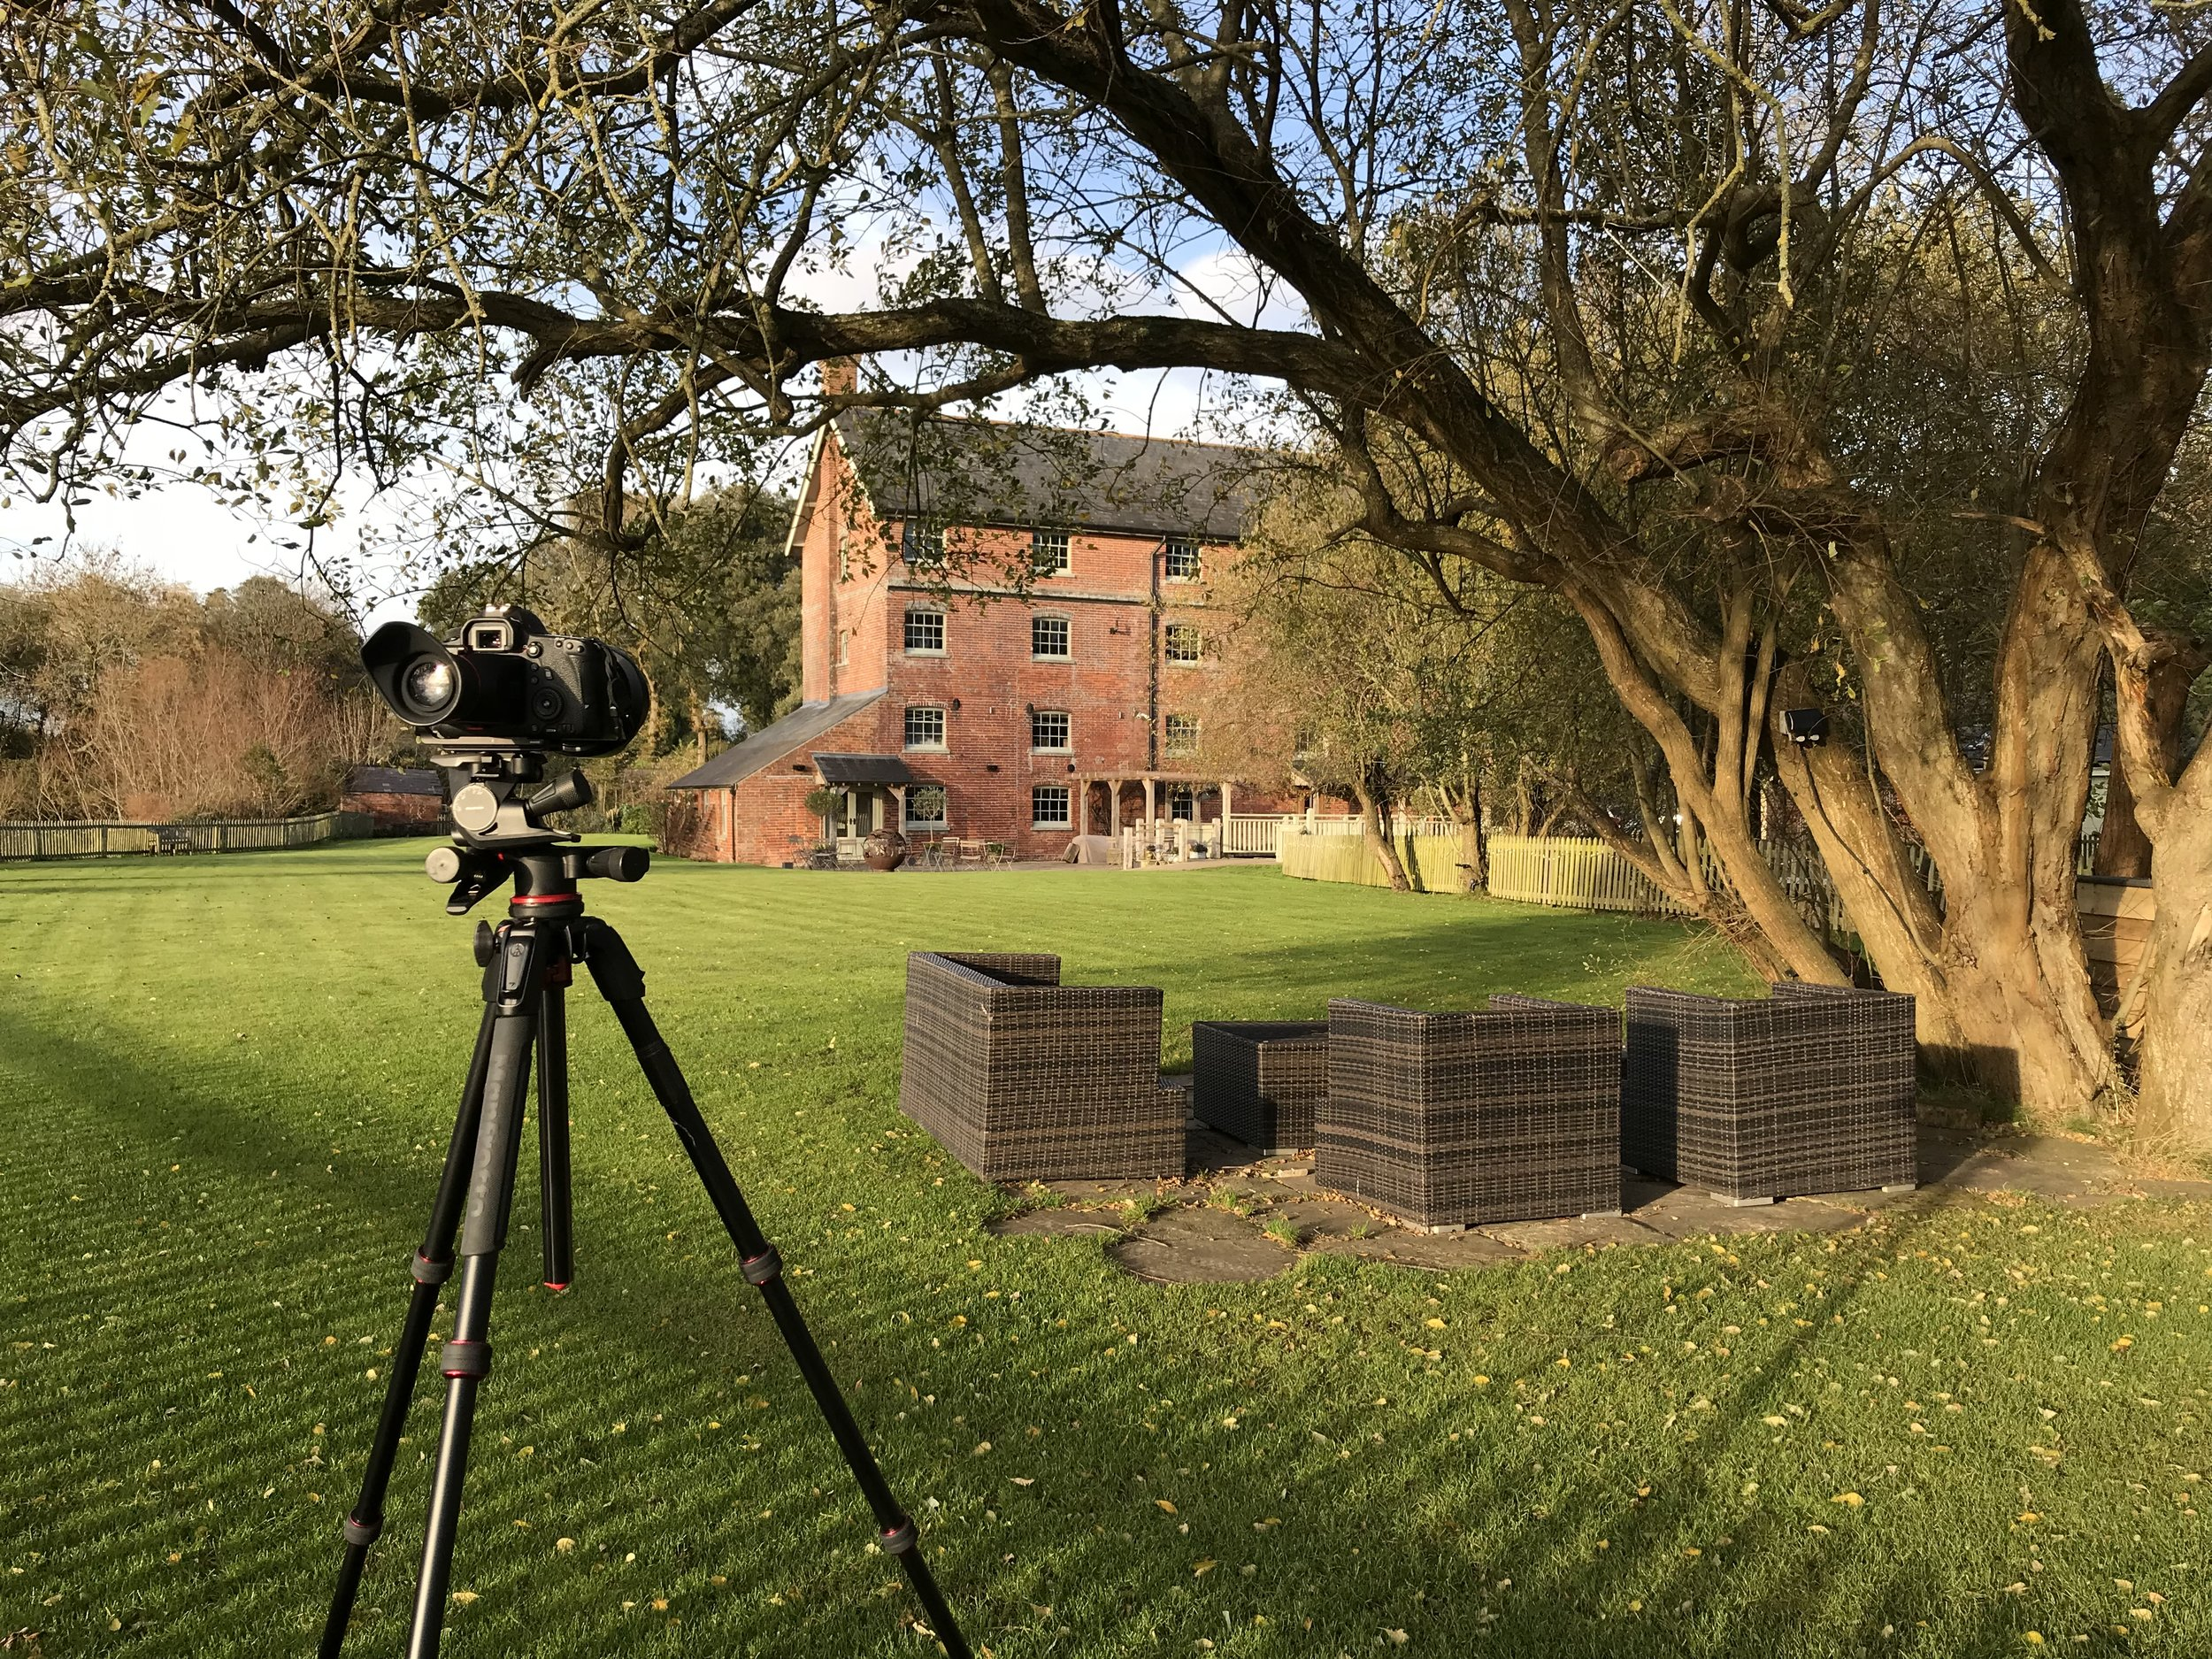 Sopley Mill being photographed by Rick McEvoy Photography